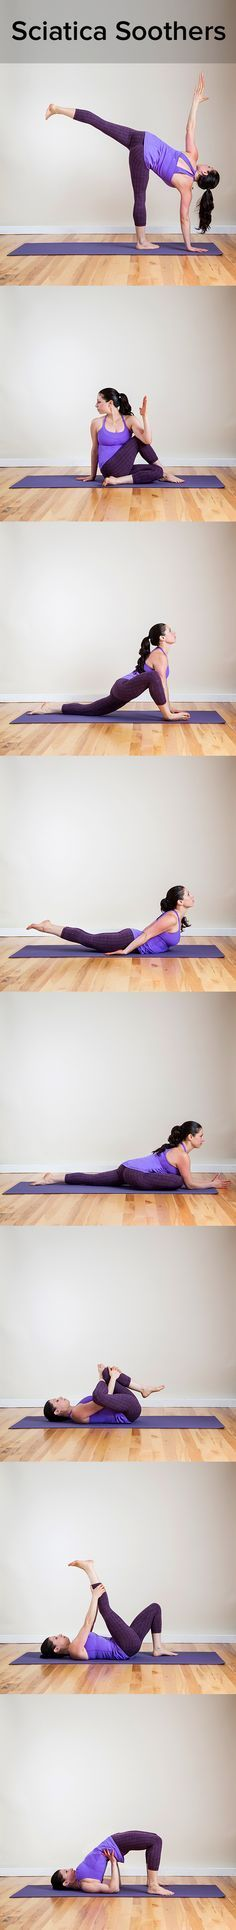 See Ya, Sciatica: Yoga Poses to Offer Relief These poses open up the hips and pelvis which places the sacrum and lumbar curve back where is belongs. this in turn takes the pressure off the sciatic nerve, alleviating pain!